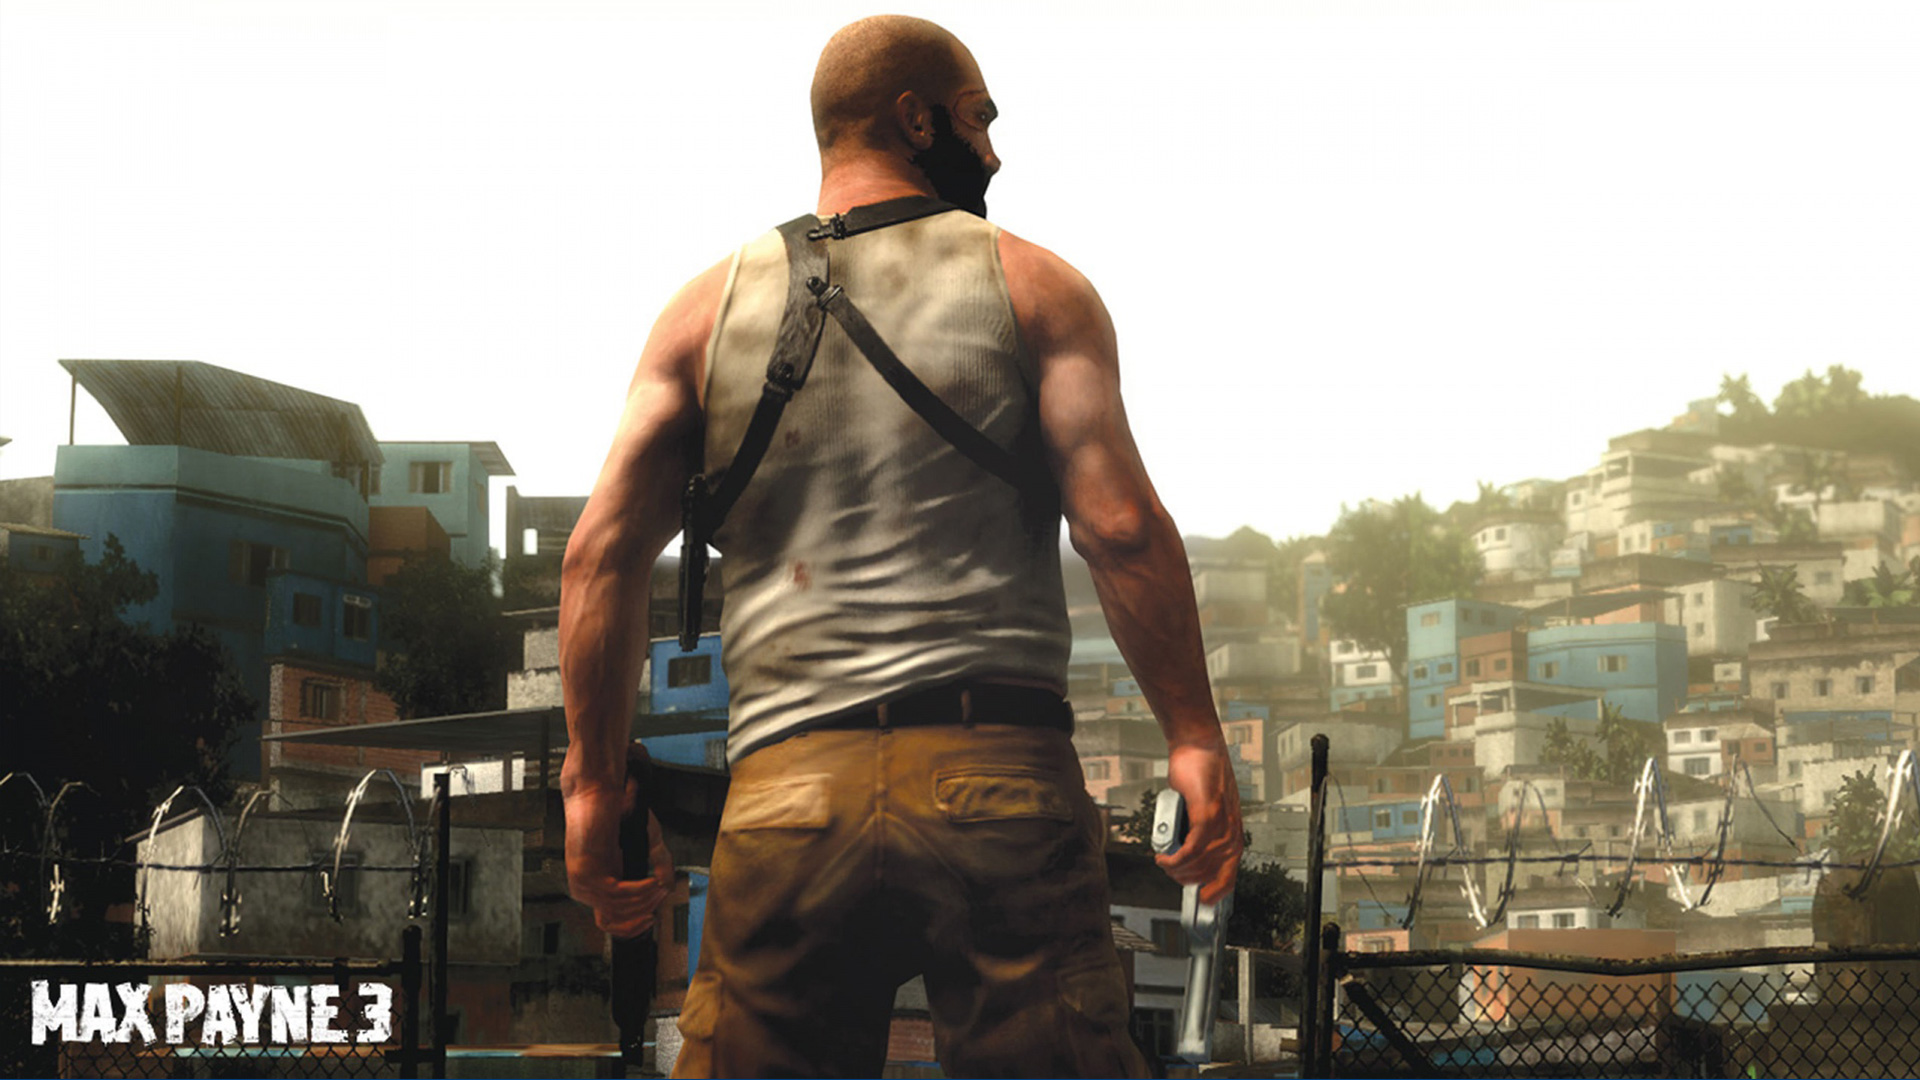 Free Download Max Payne 3 Wallpaper In 1920x1080 1920x1080 For